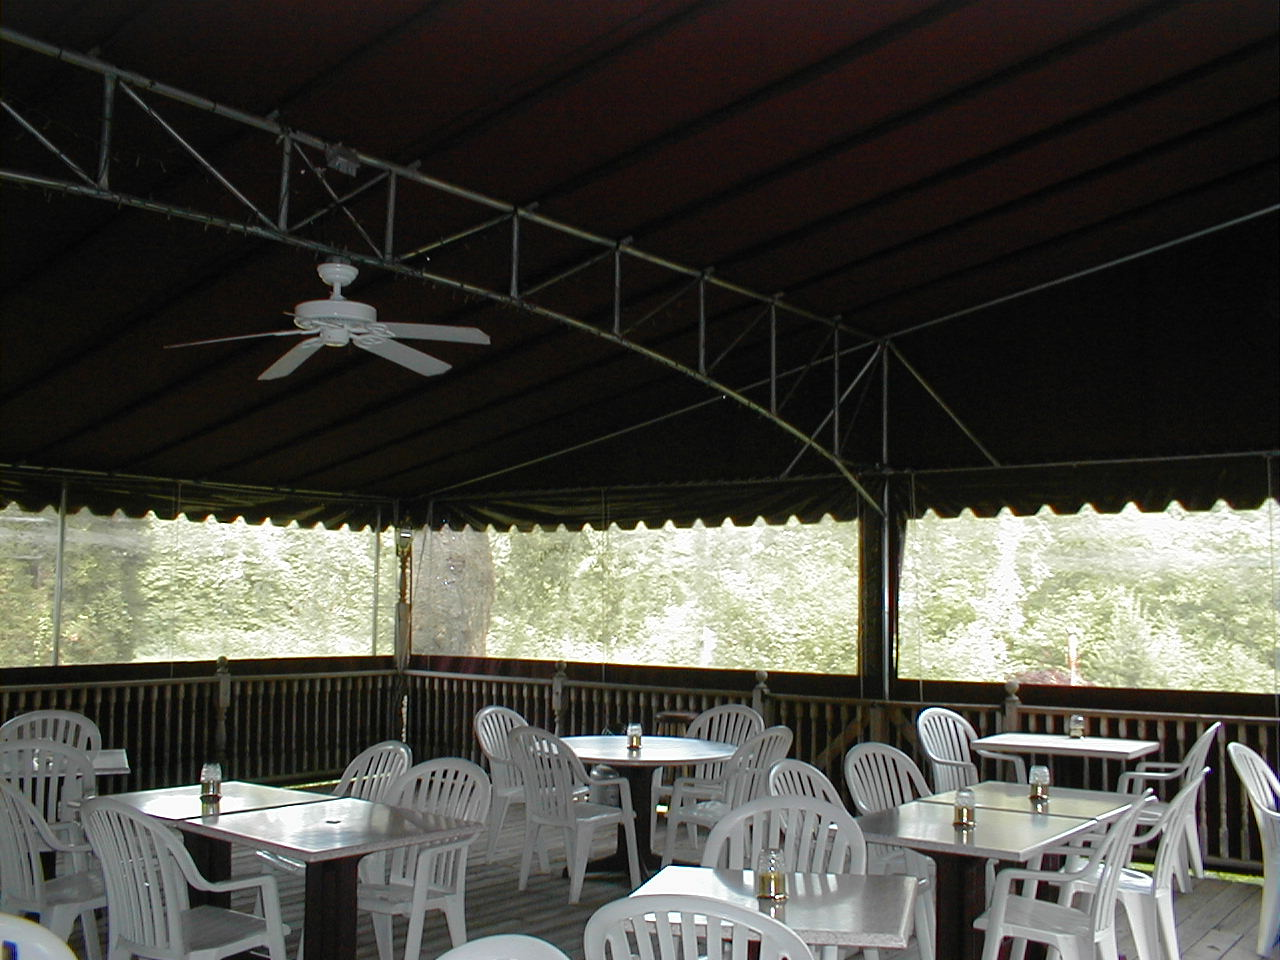 Commercial stationary canopy awning for dining Mohnton PA & Commercial stationary canopy awning for dining Mohnton PA ...